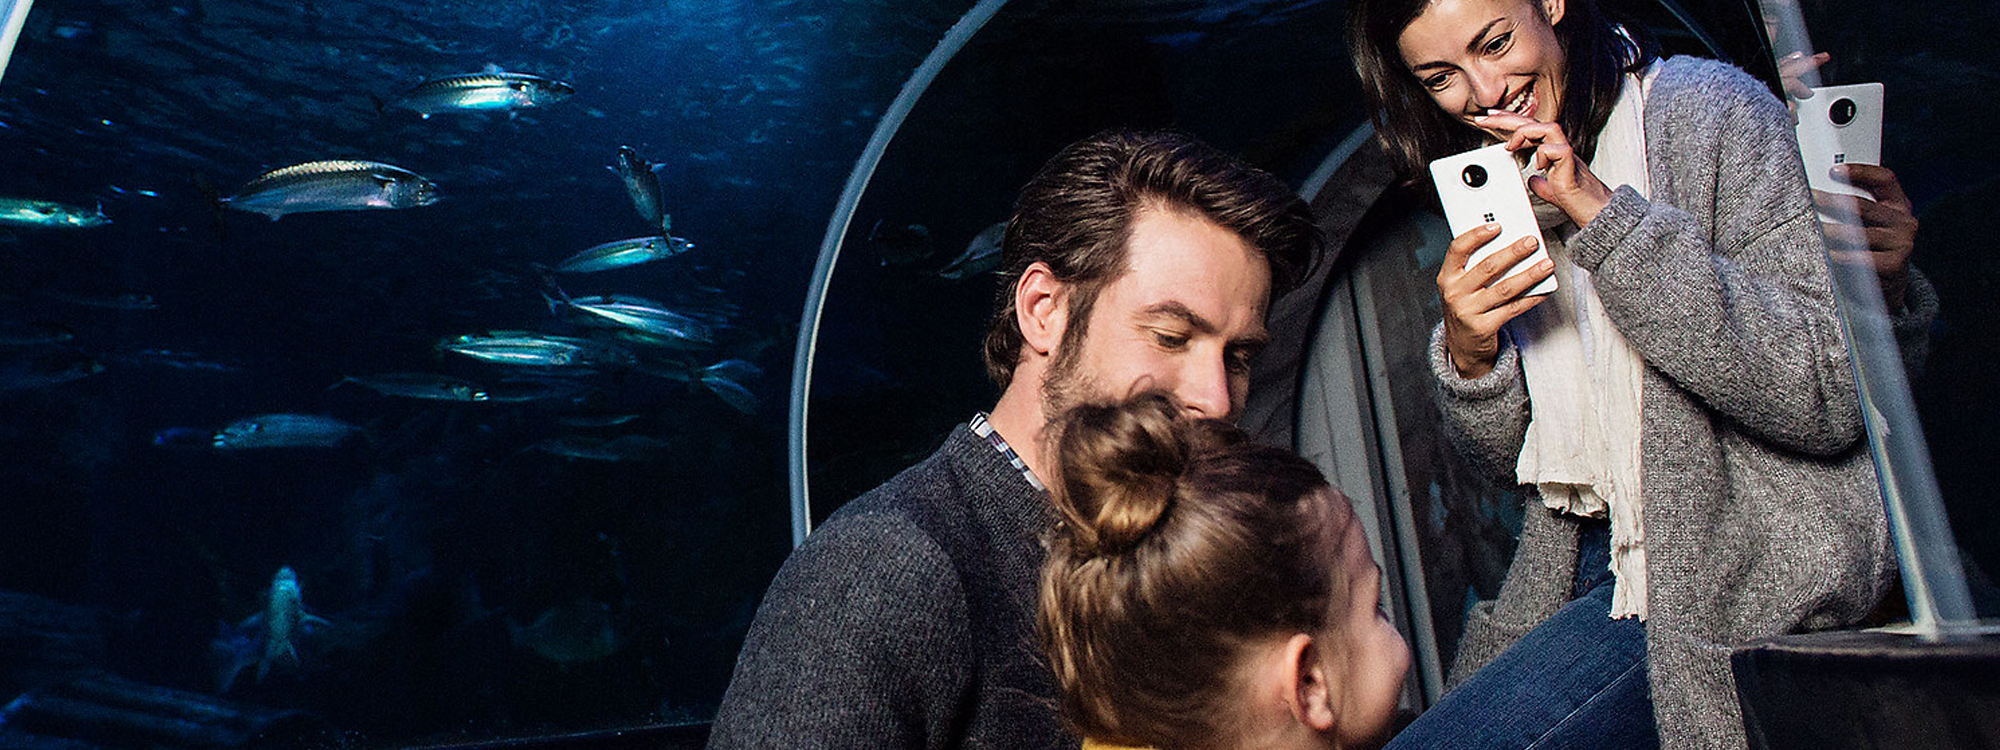 Mother using Lumia 950 XL to take a picture of father and daughter at an aquarium